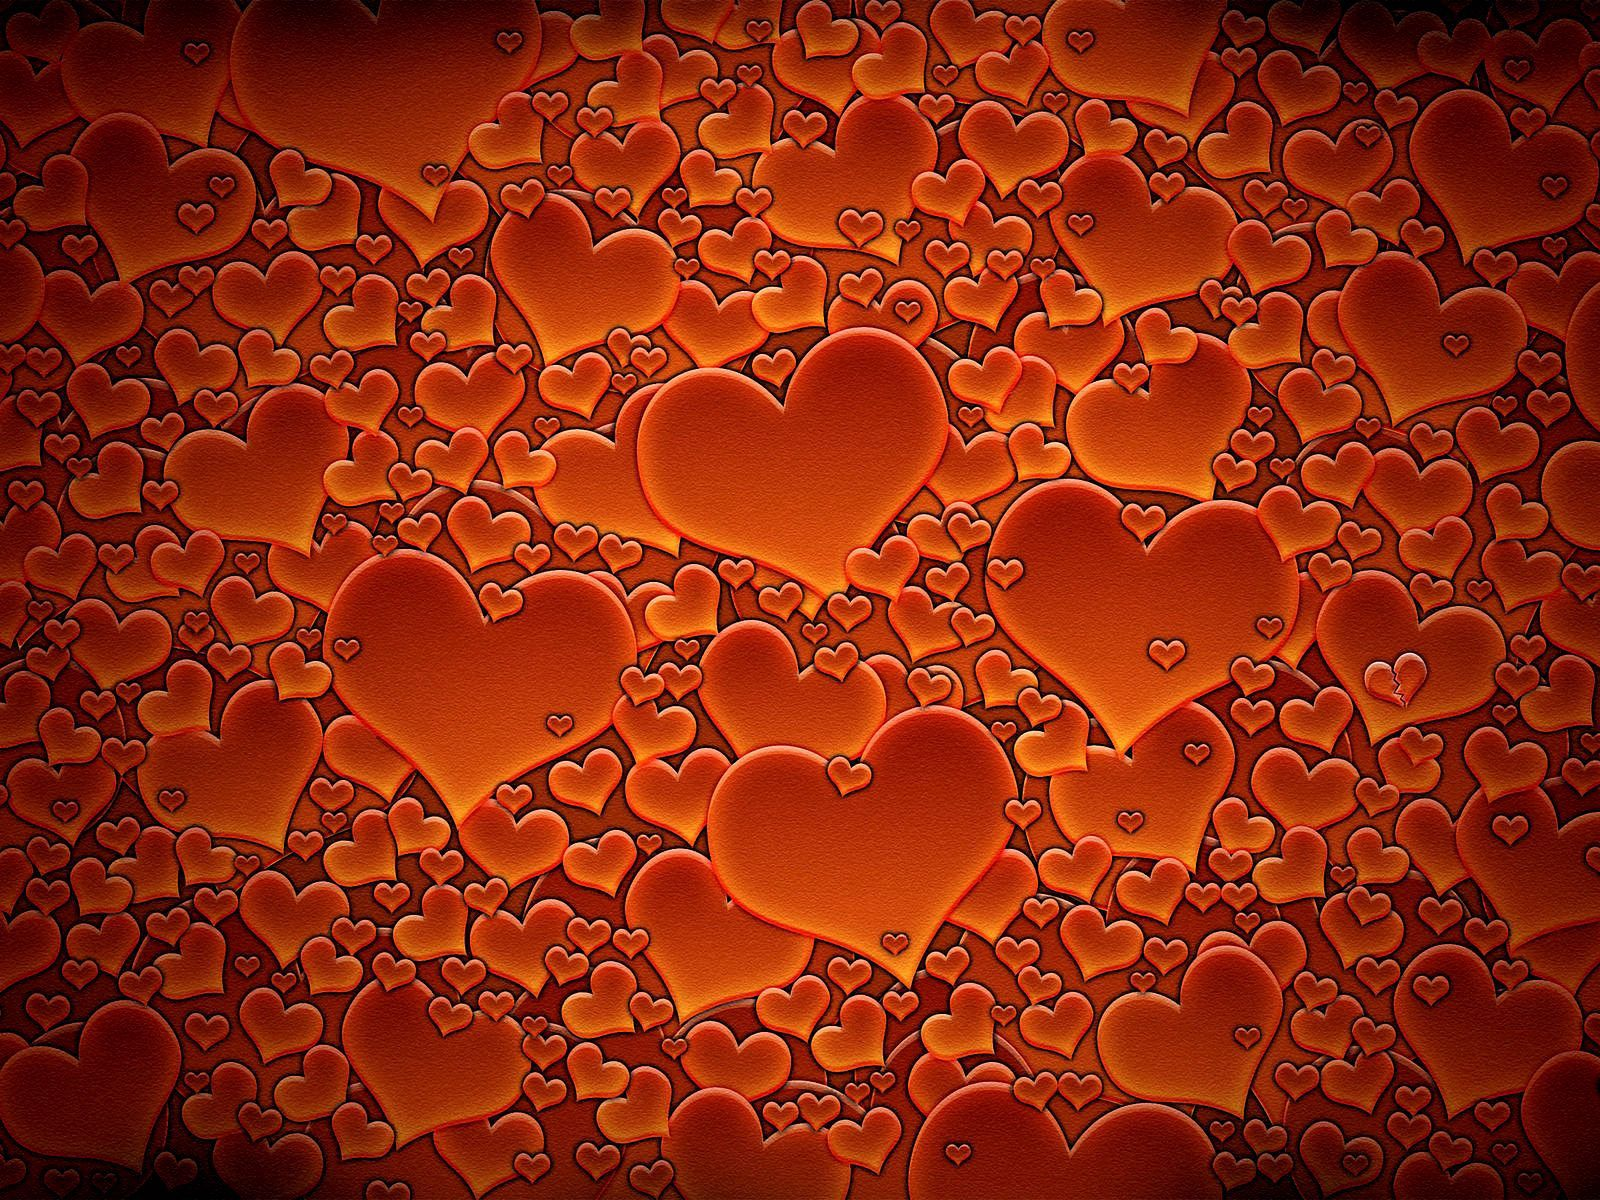 156693 download wallpaper Textures, Texture, Heart, Redhead, Lot screensavers and pictures for free